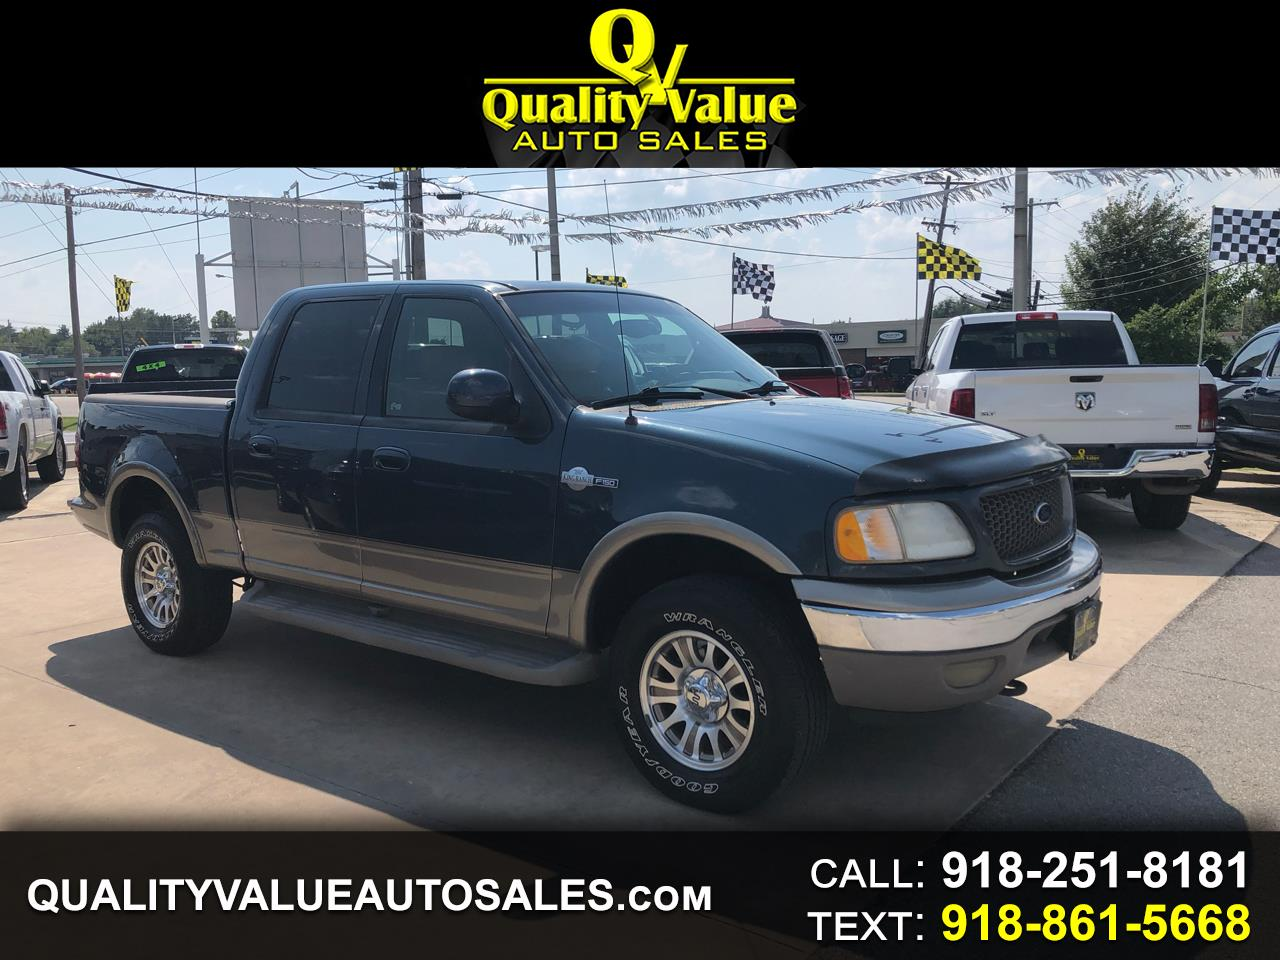 2001 Ford F-150 King Ranch 4x4 SuperCrew